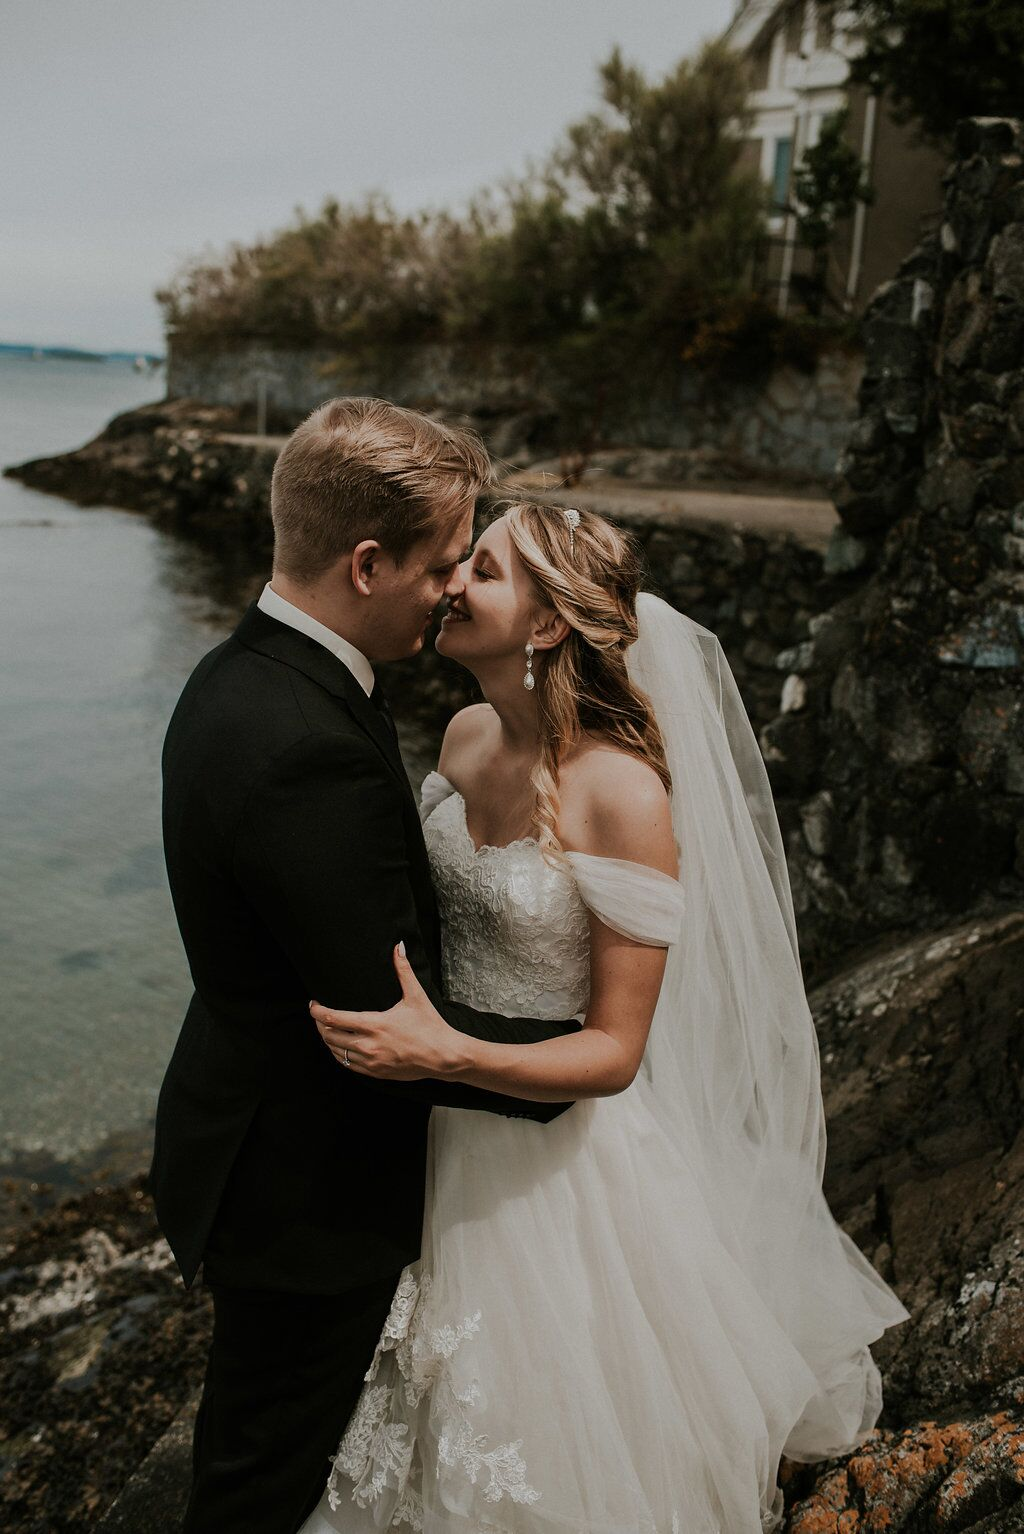 Romantic Newlyweds kiss above the ocean water on Vancouver Island